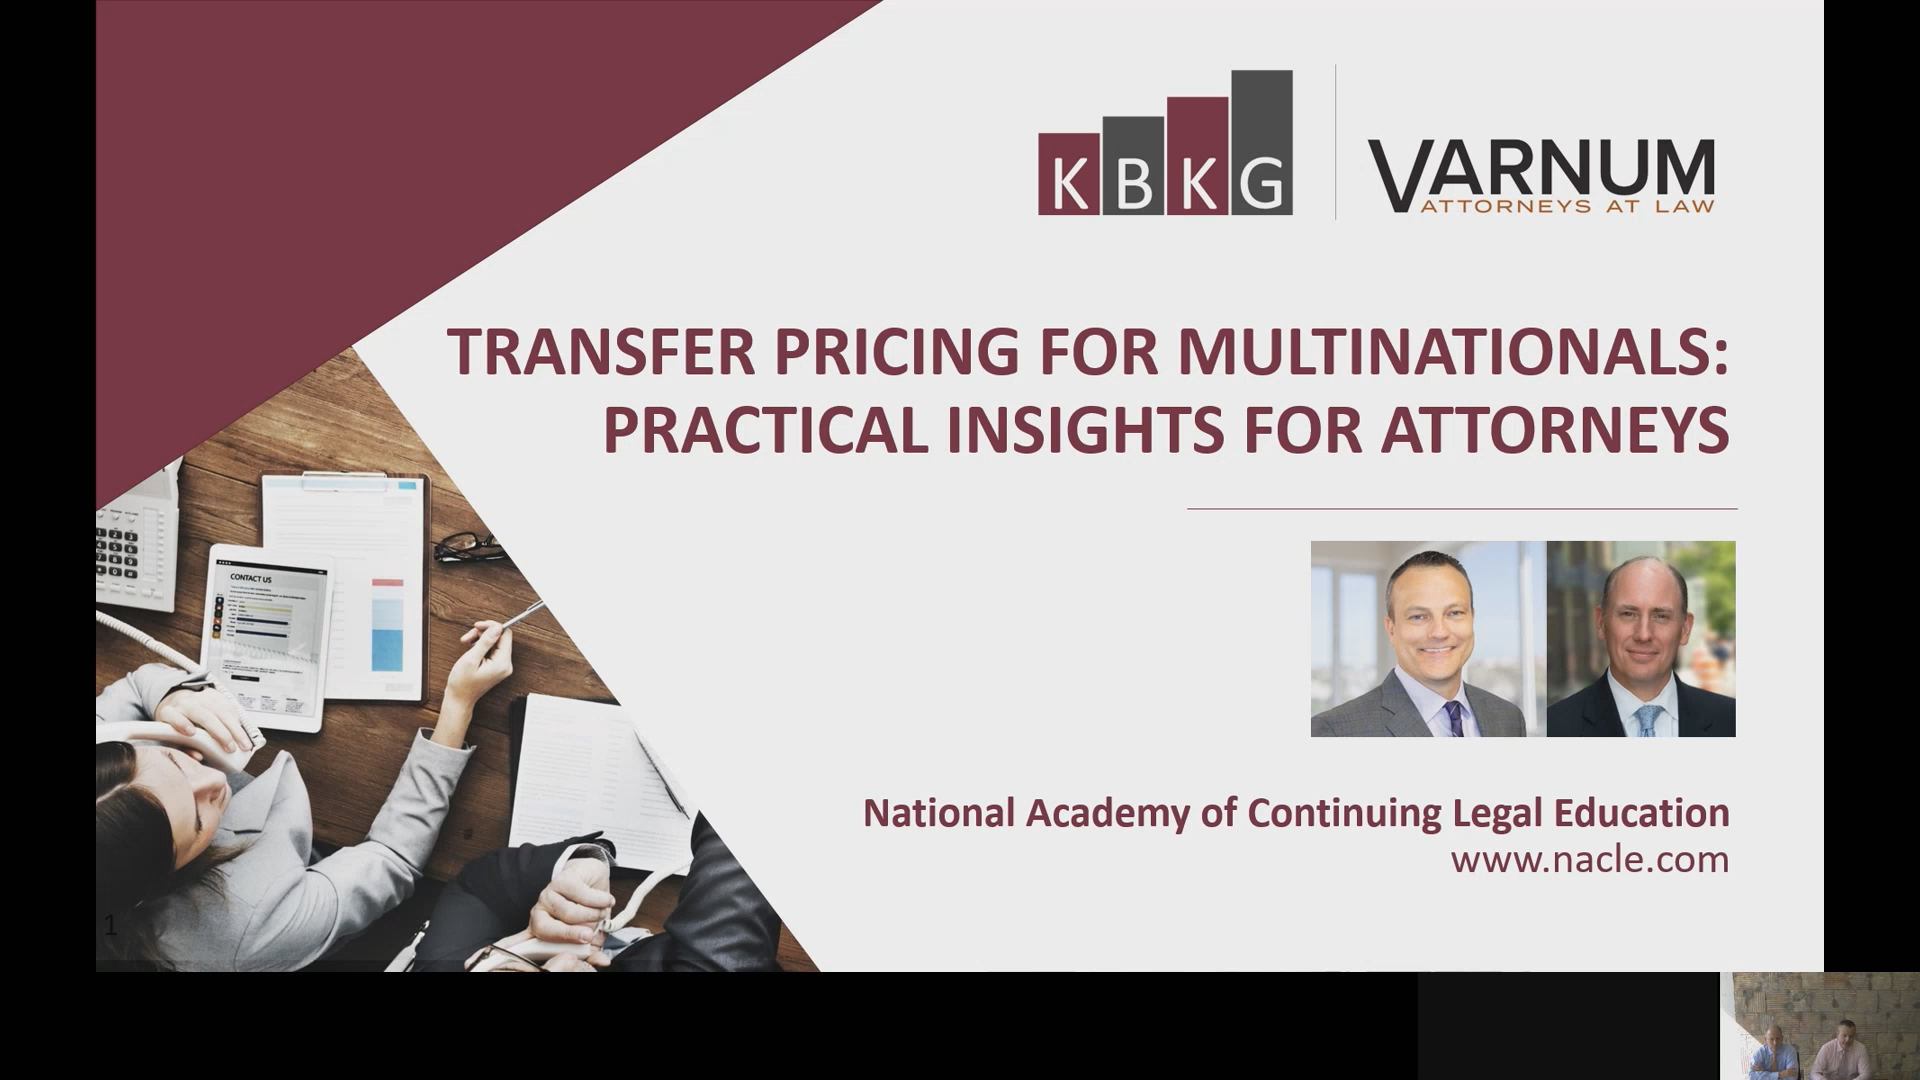 Transfer Pricing for Multinationals: Practical Insights for Attorneys Thumbnail